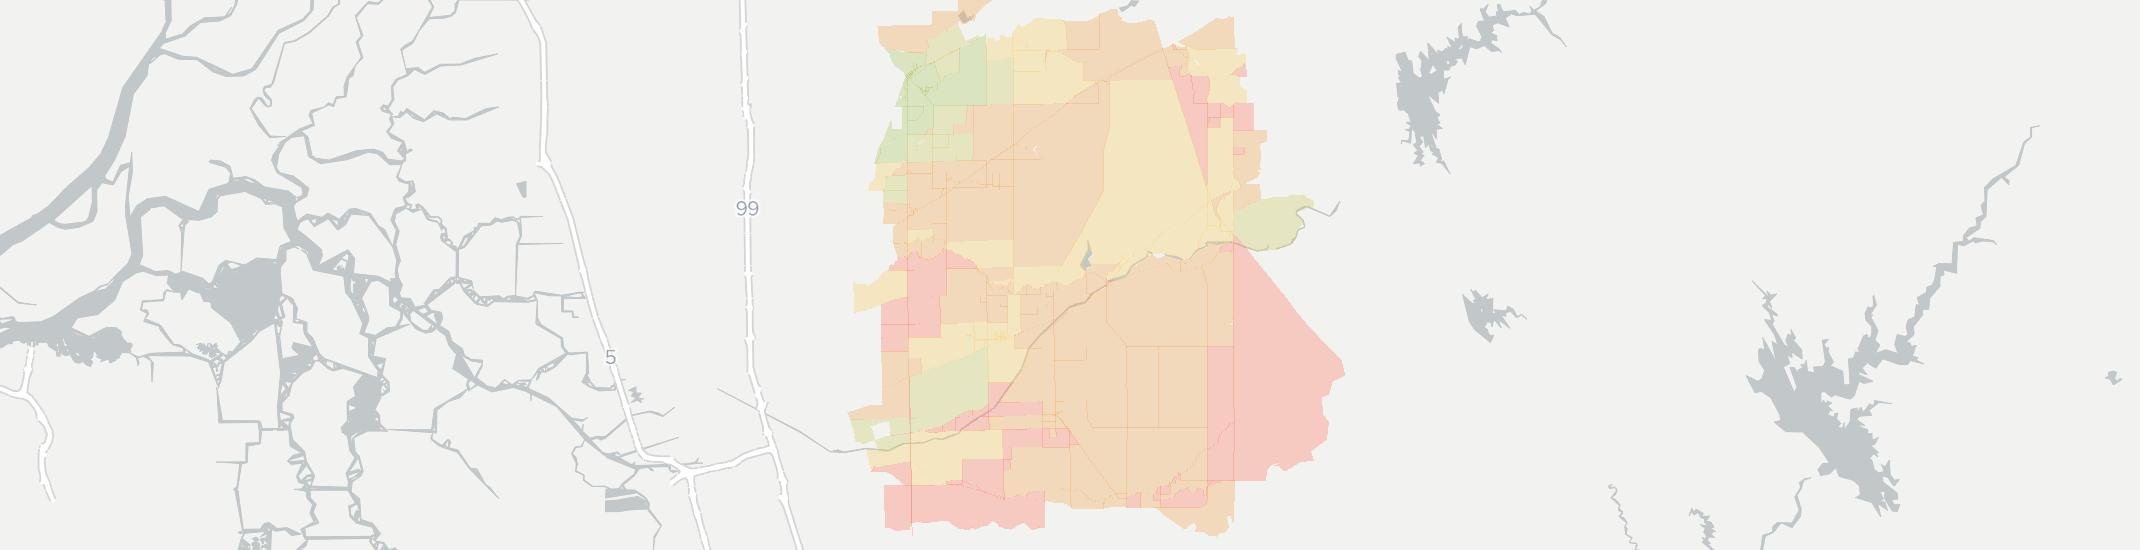 Linden California Map.Internet Providers In Linden Ca Compare 18 Providers